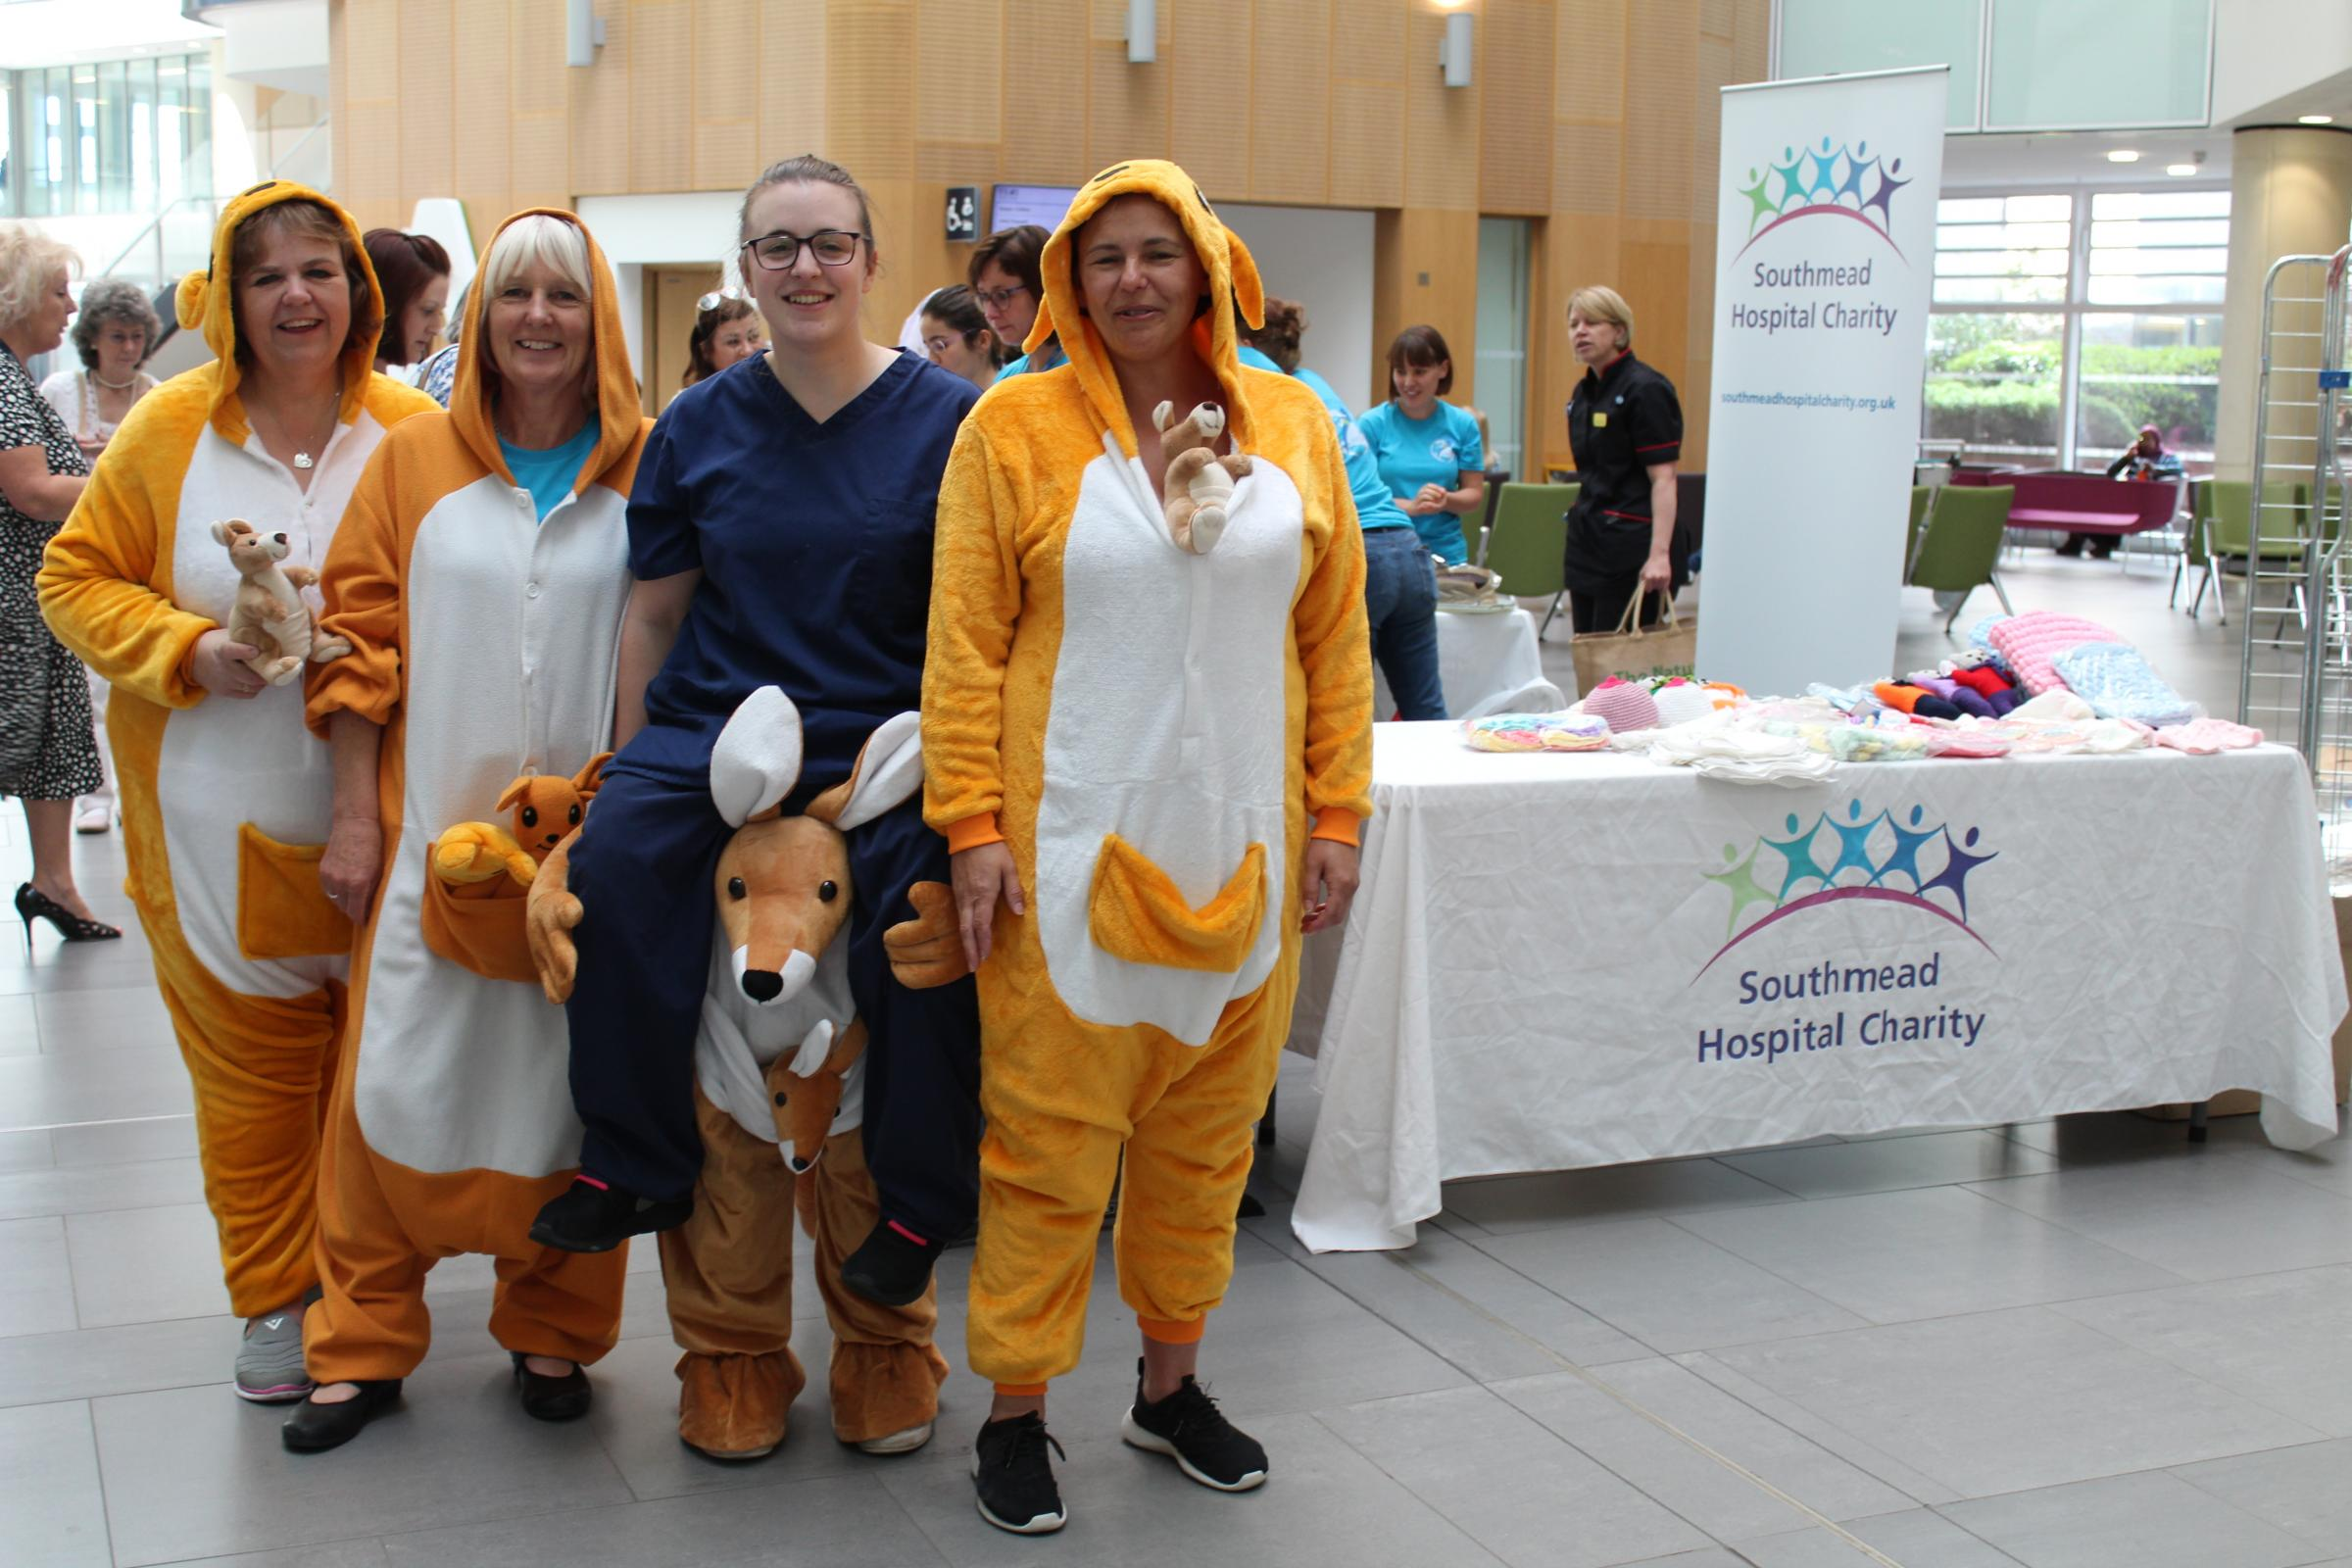 NICU nurses Lisa Ramsey, Karen Wright, Kirsty Wright and Michelle Jackson dressed as Kangaroos at Southmead Hospital